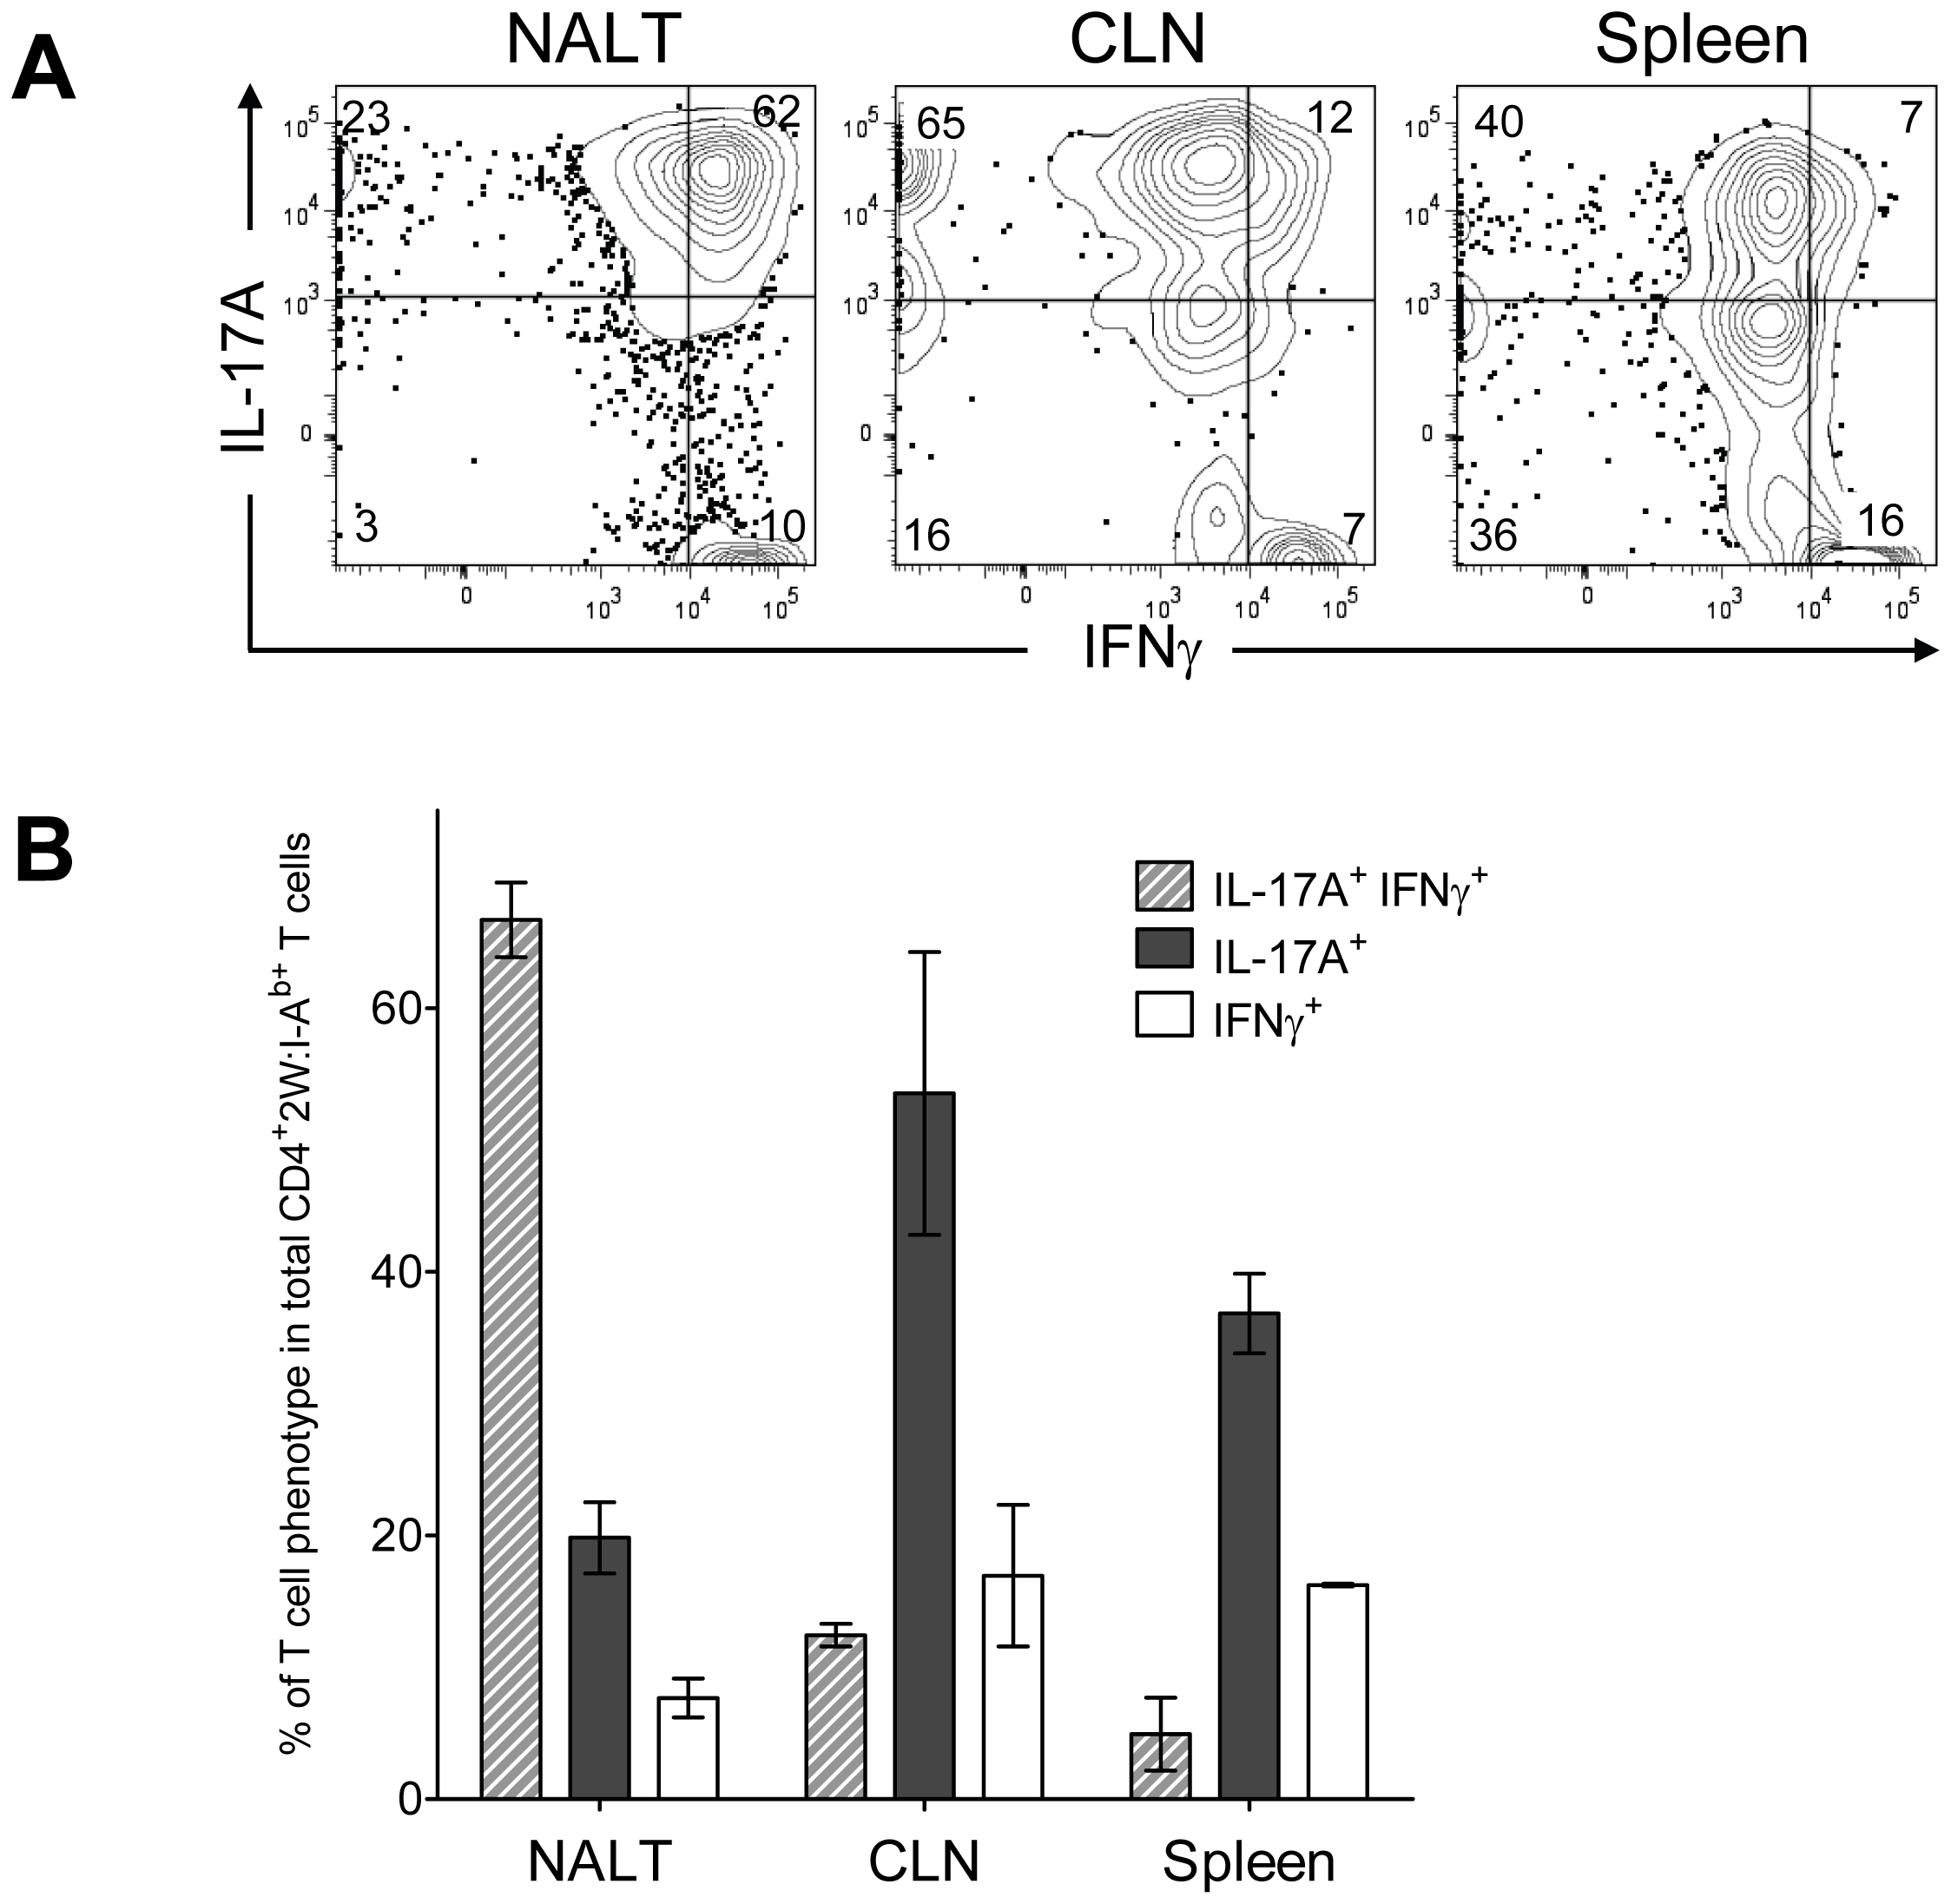 Recurrent GAS infection shifts the cytokine profile of CD4<sup>+</sup> 2W:I-A<sup>b+</sup> T cells to IL-17A<sup>+</sup>, IFN-γ<sup>+</sup> population in NALT.